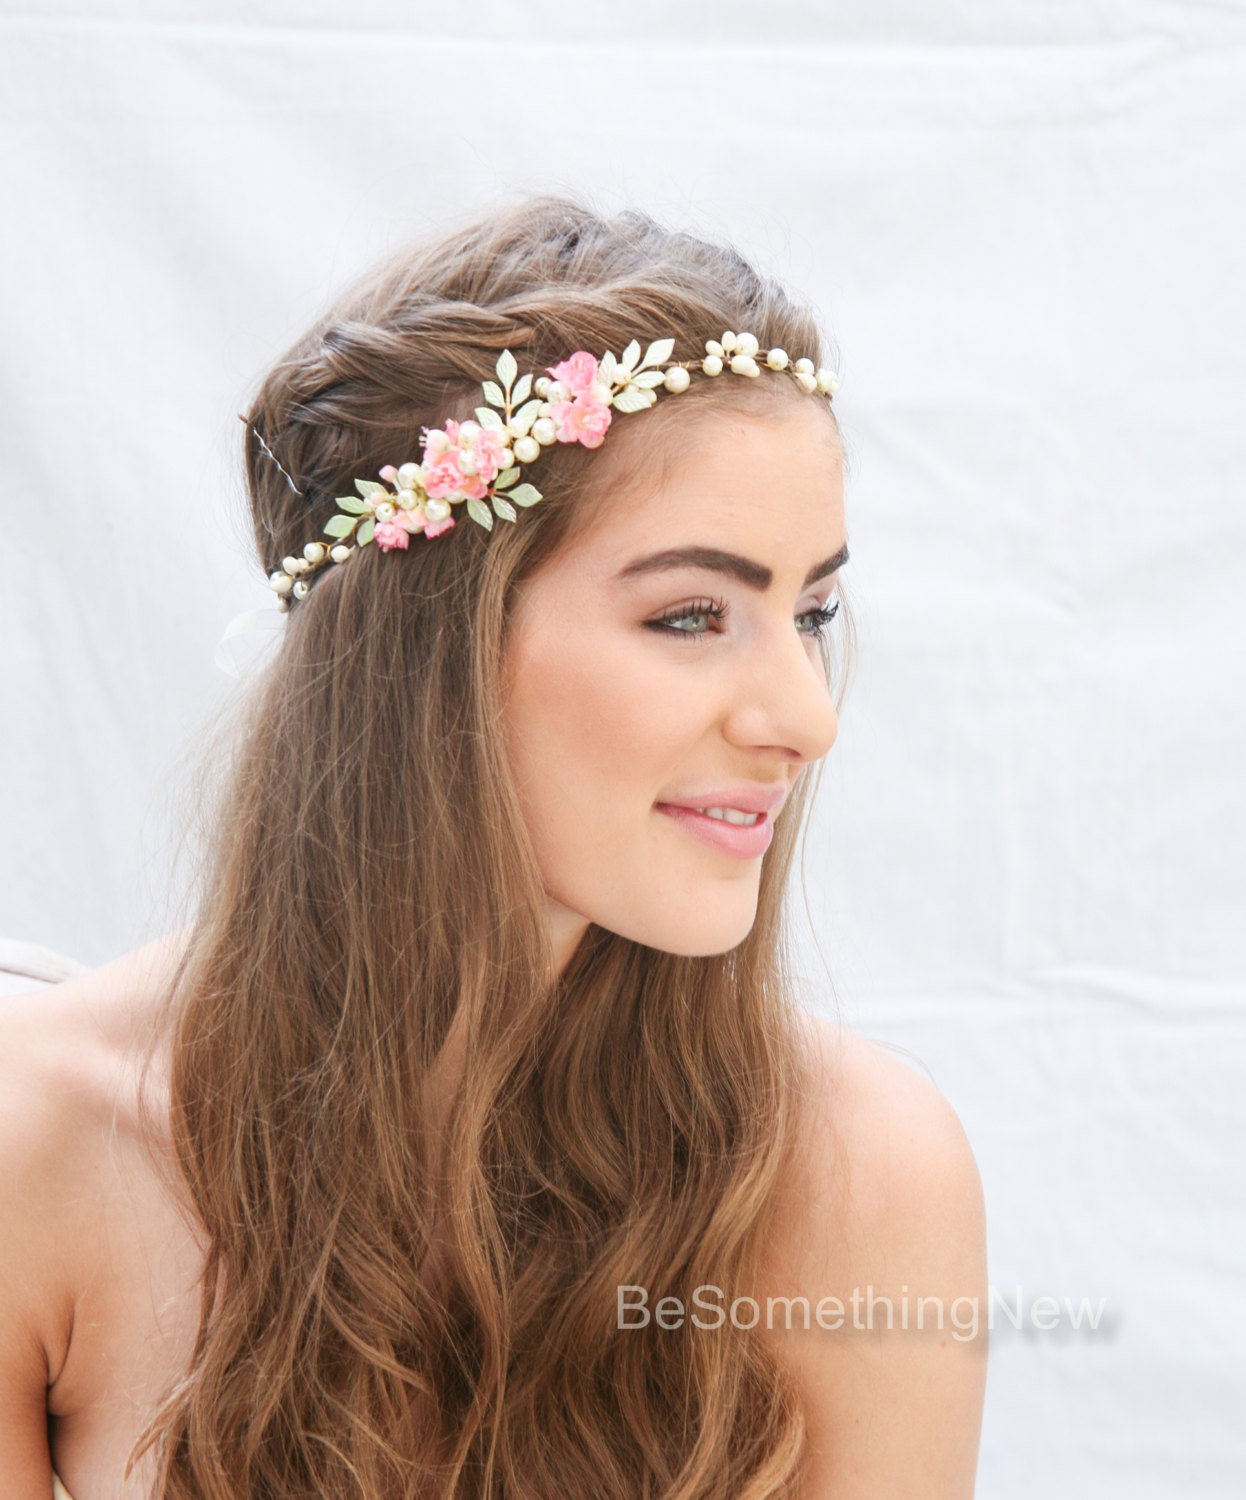 Wedding Hairstyle Crown: Flower Crown With Hand Painted Leaves And Pink Flowers